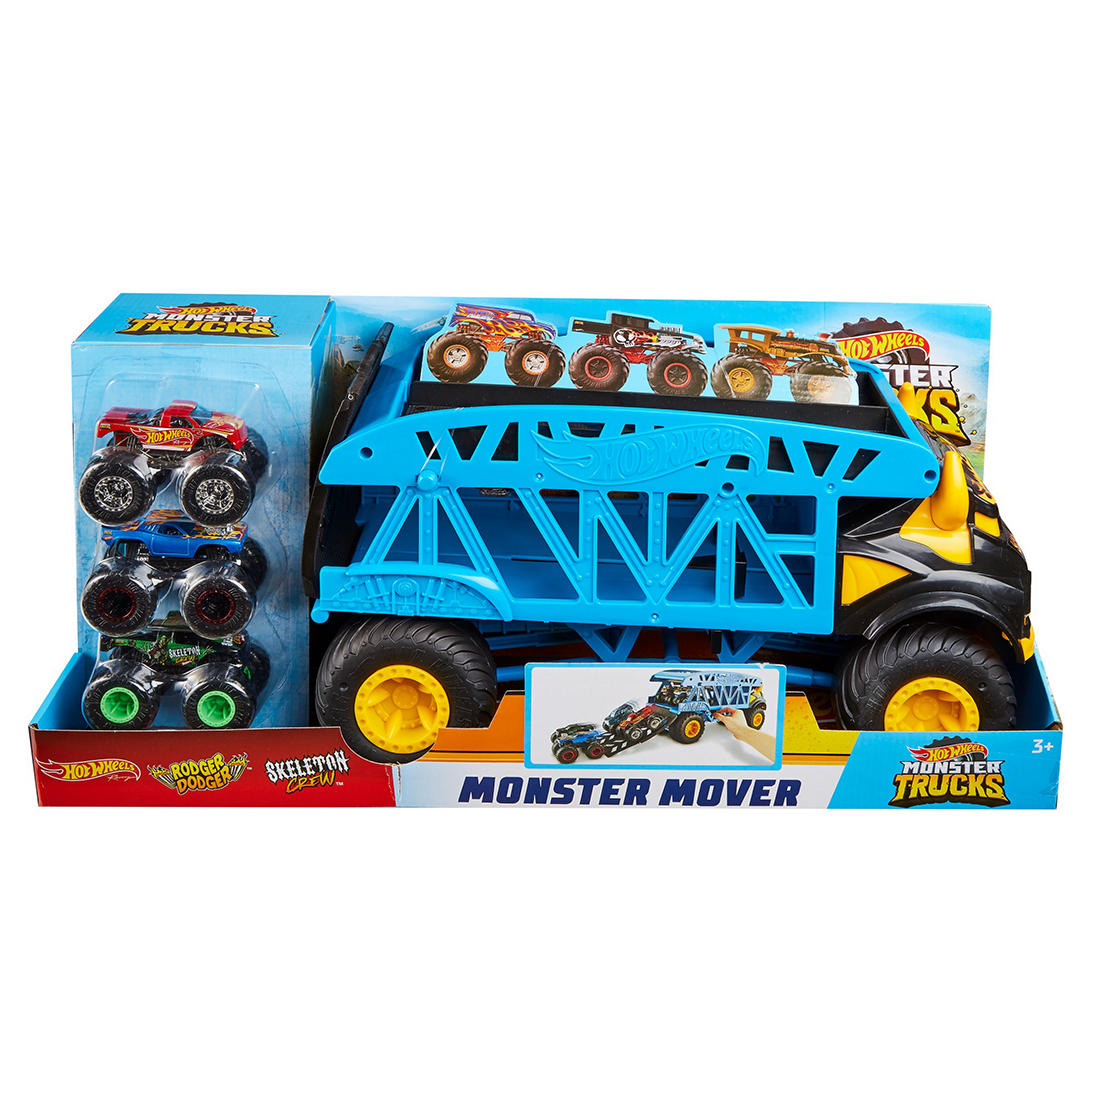 Hot Wheels Monster Truck Monster Mover With 3 Trucks Bundle Bjs Wholesale Club